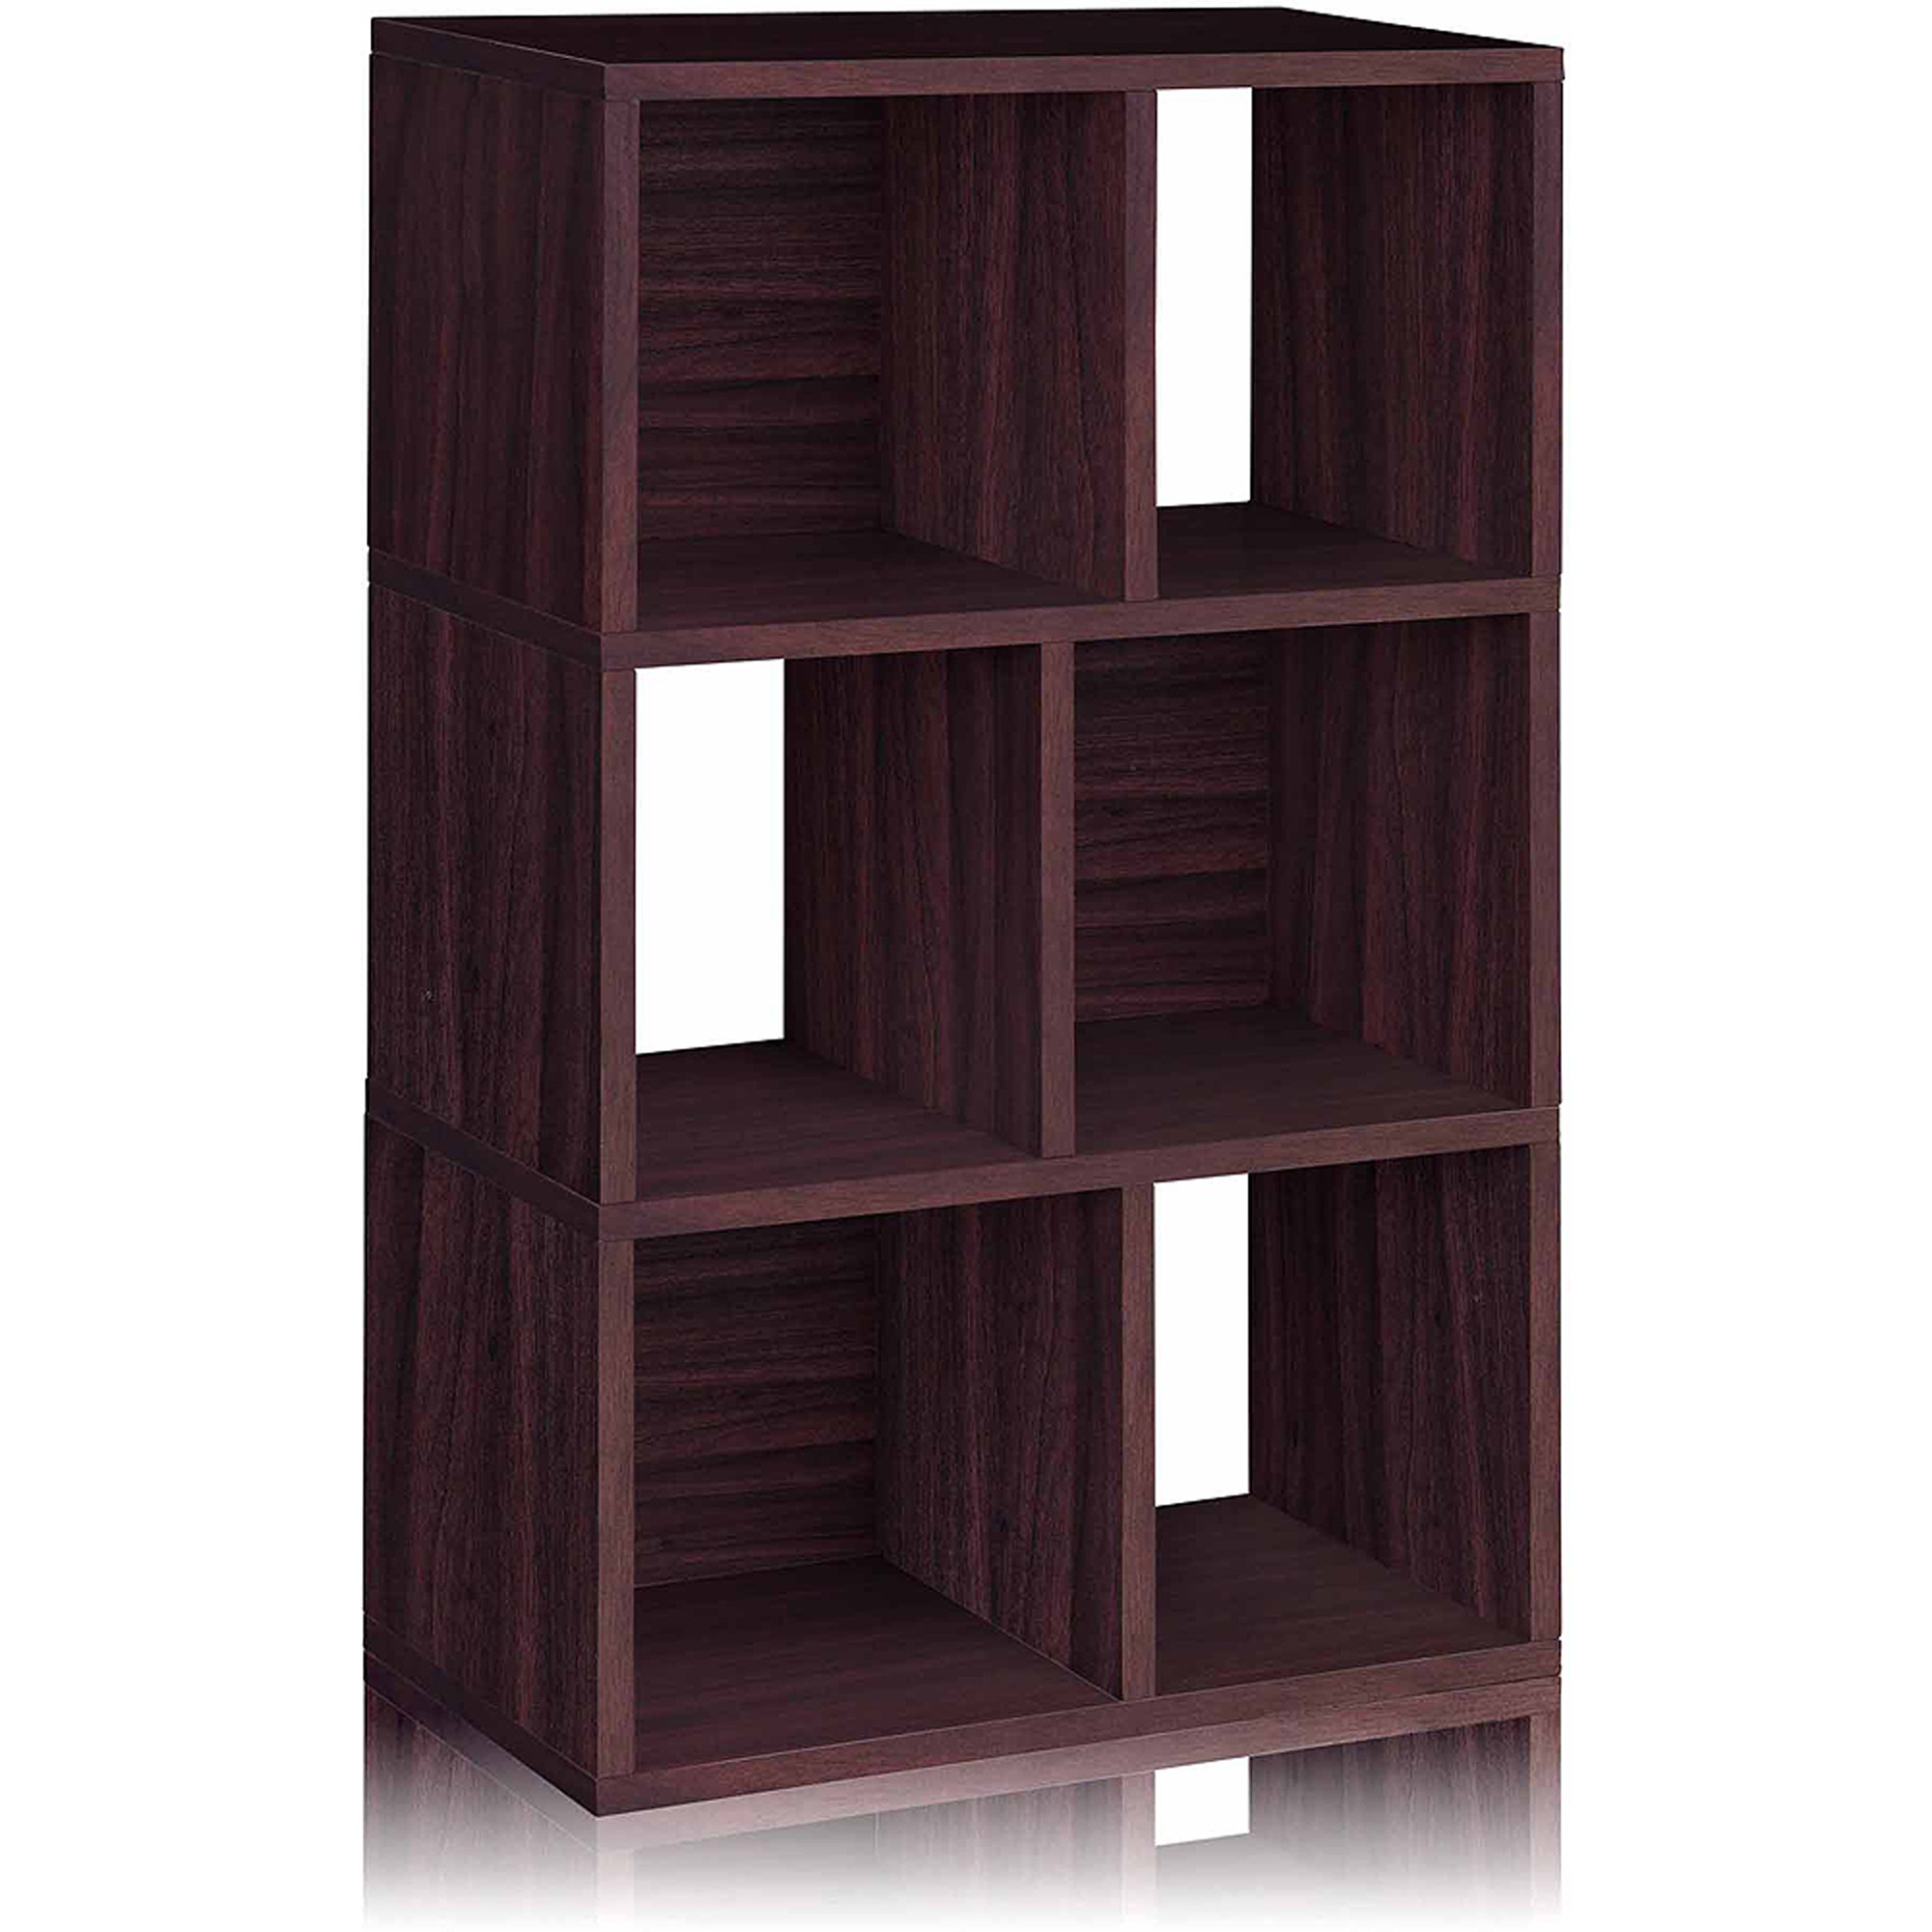 Way Basics Eco 3-Shelf Laguna Bookcase and Cubby Storage, Espresso